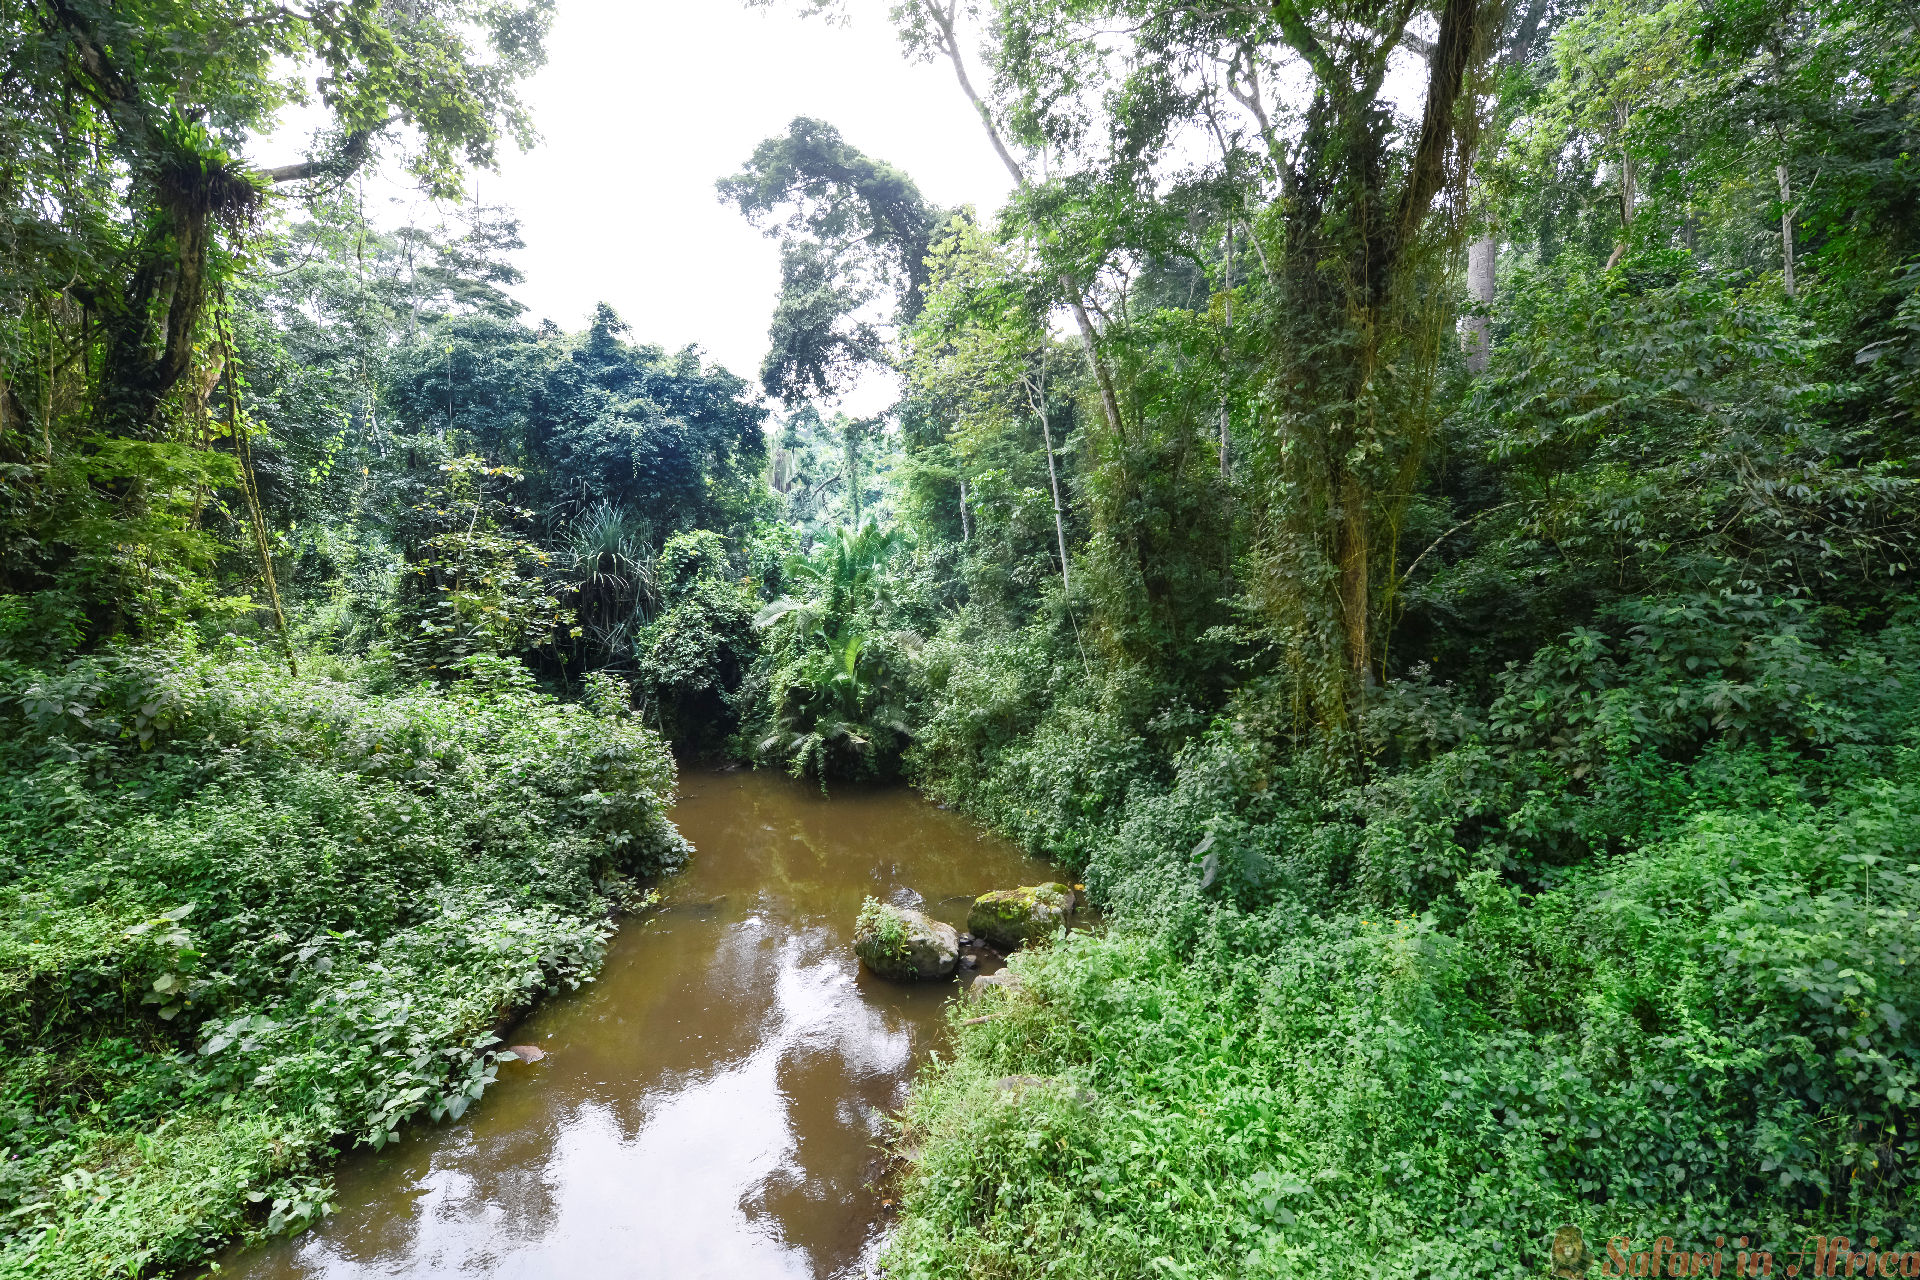 River near the rainforest of Kibale National Park, Uganda